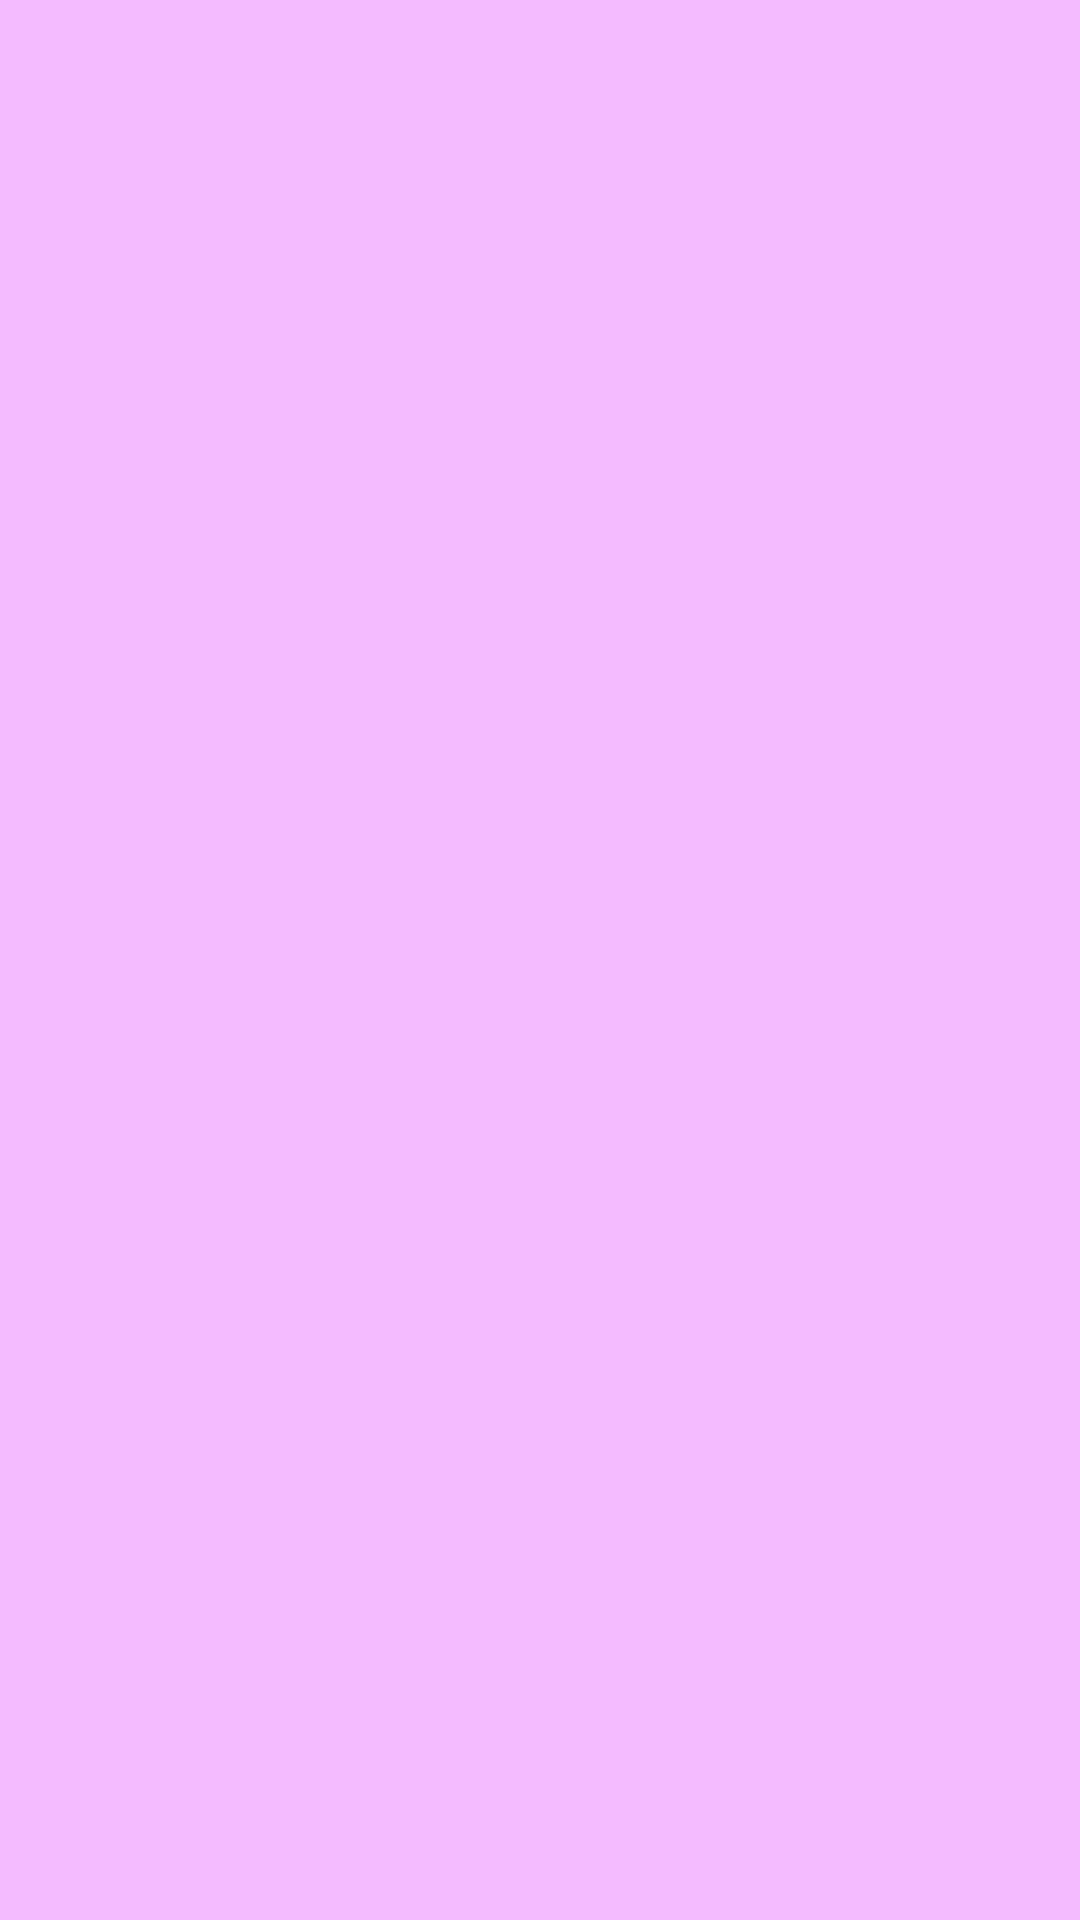 1080x1920 Electric Lavender Solid Color Background